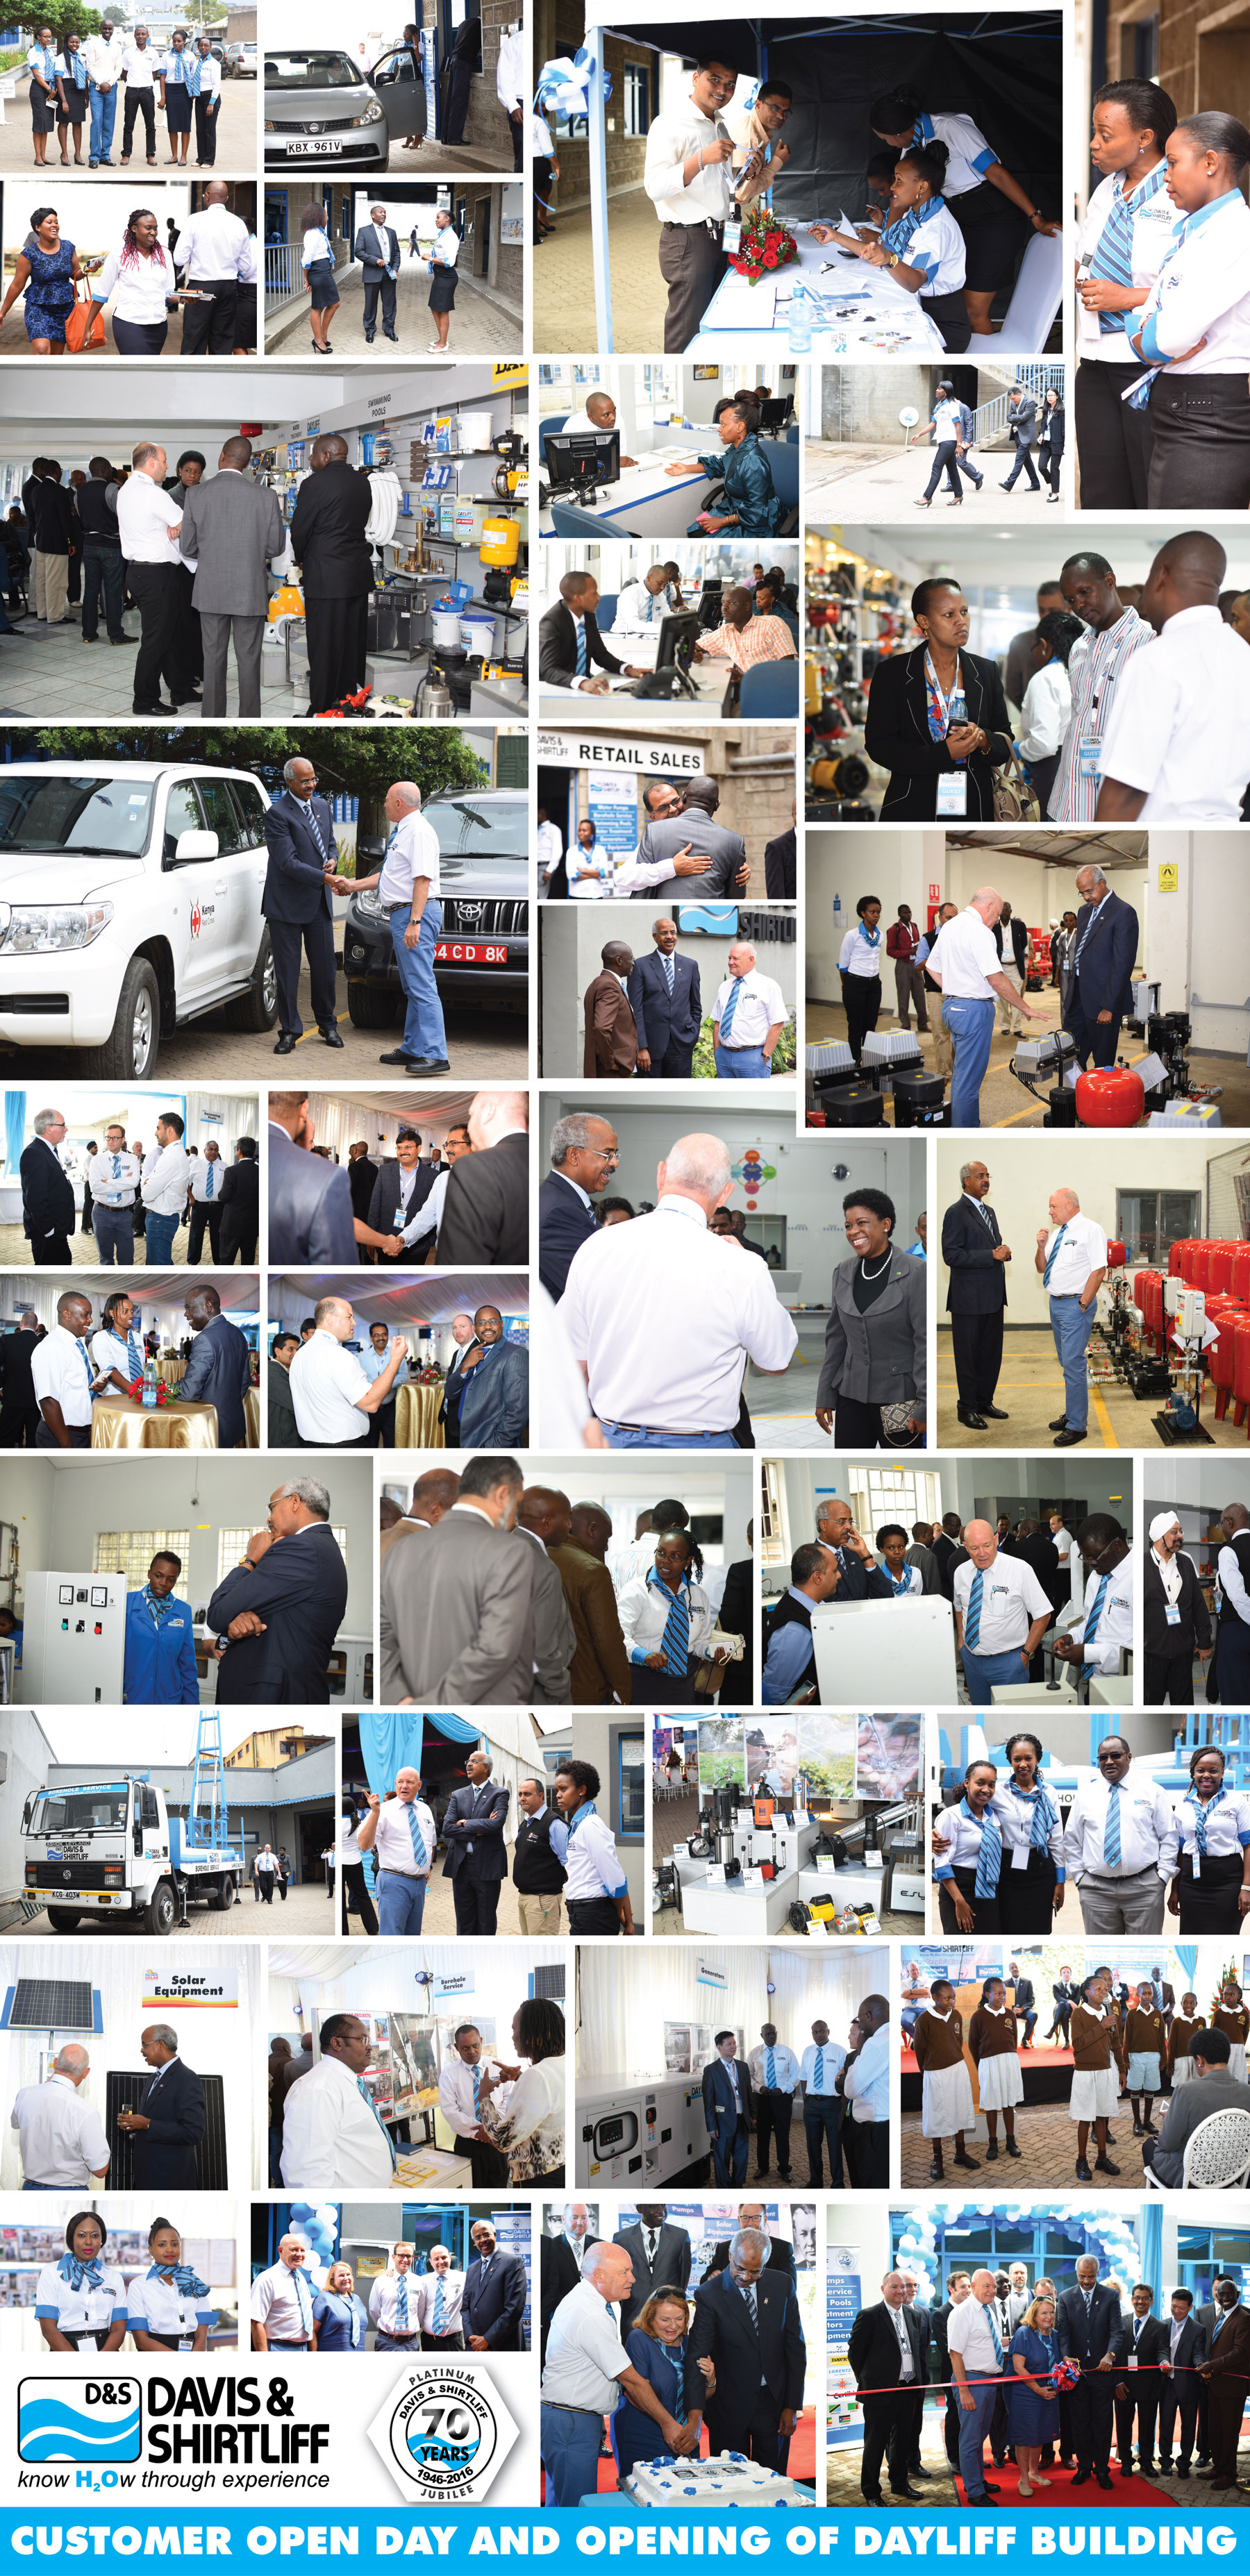 Davis and Shirtliff Customer Open Day Photos